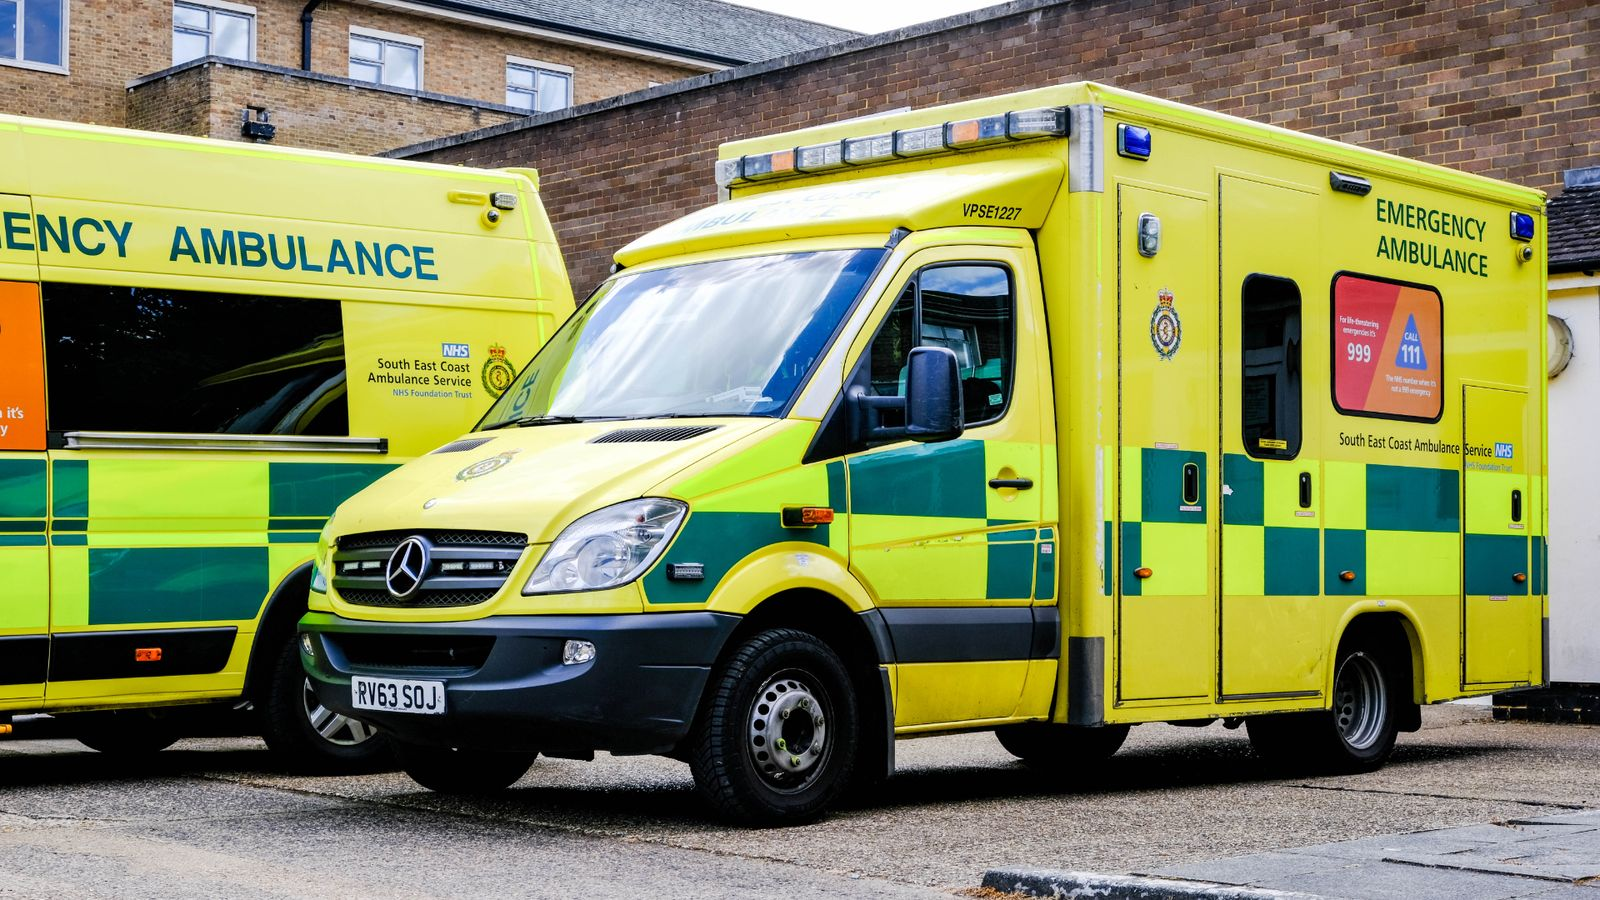 COVID-19: UK records 26,911 new cases and 158 further deaths - with 8,339 patients in hospital